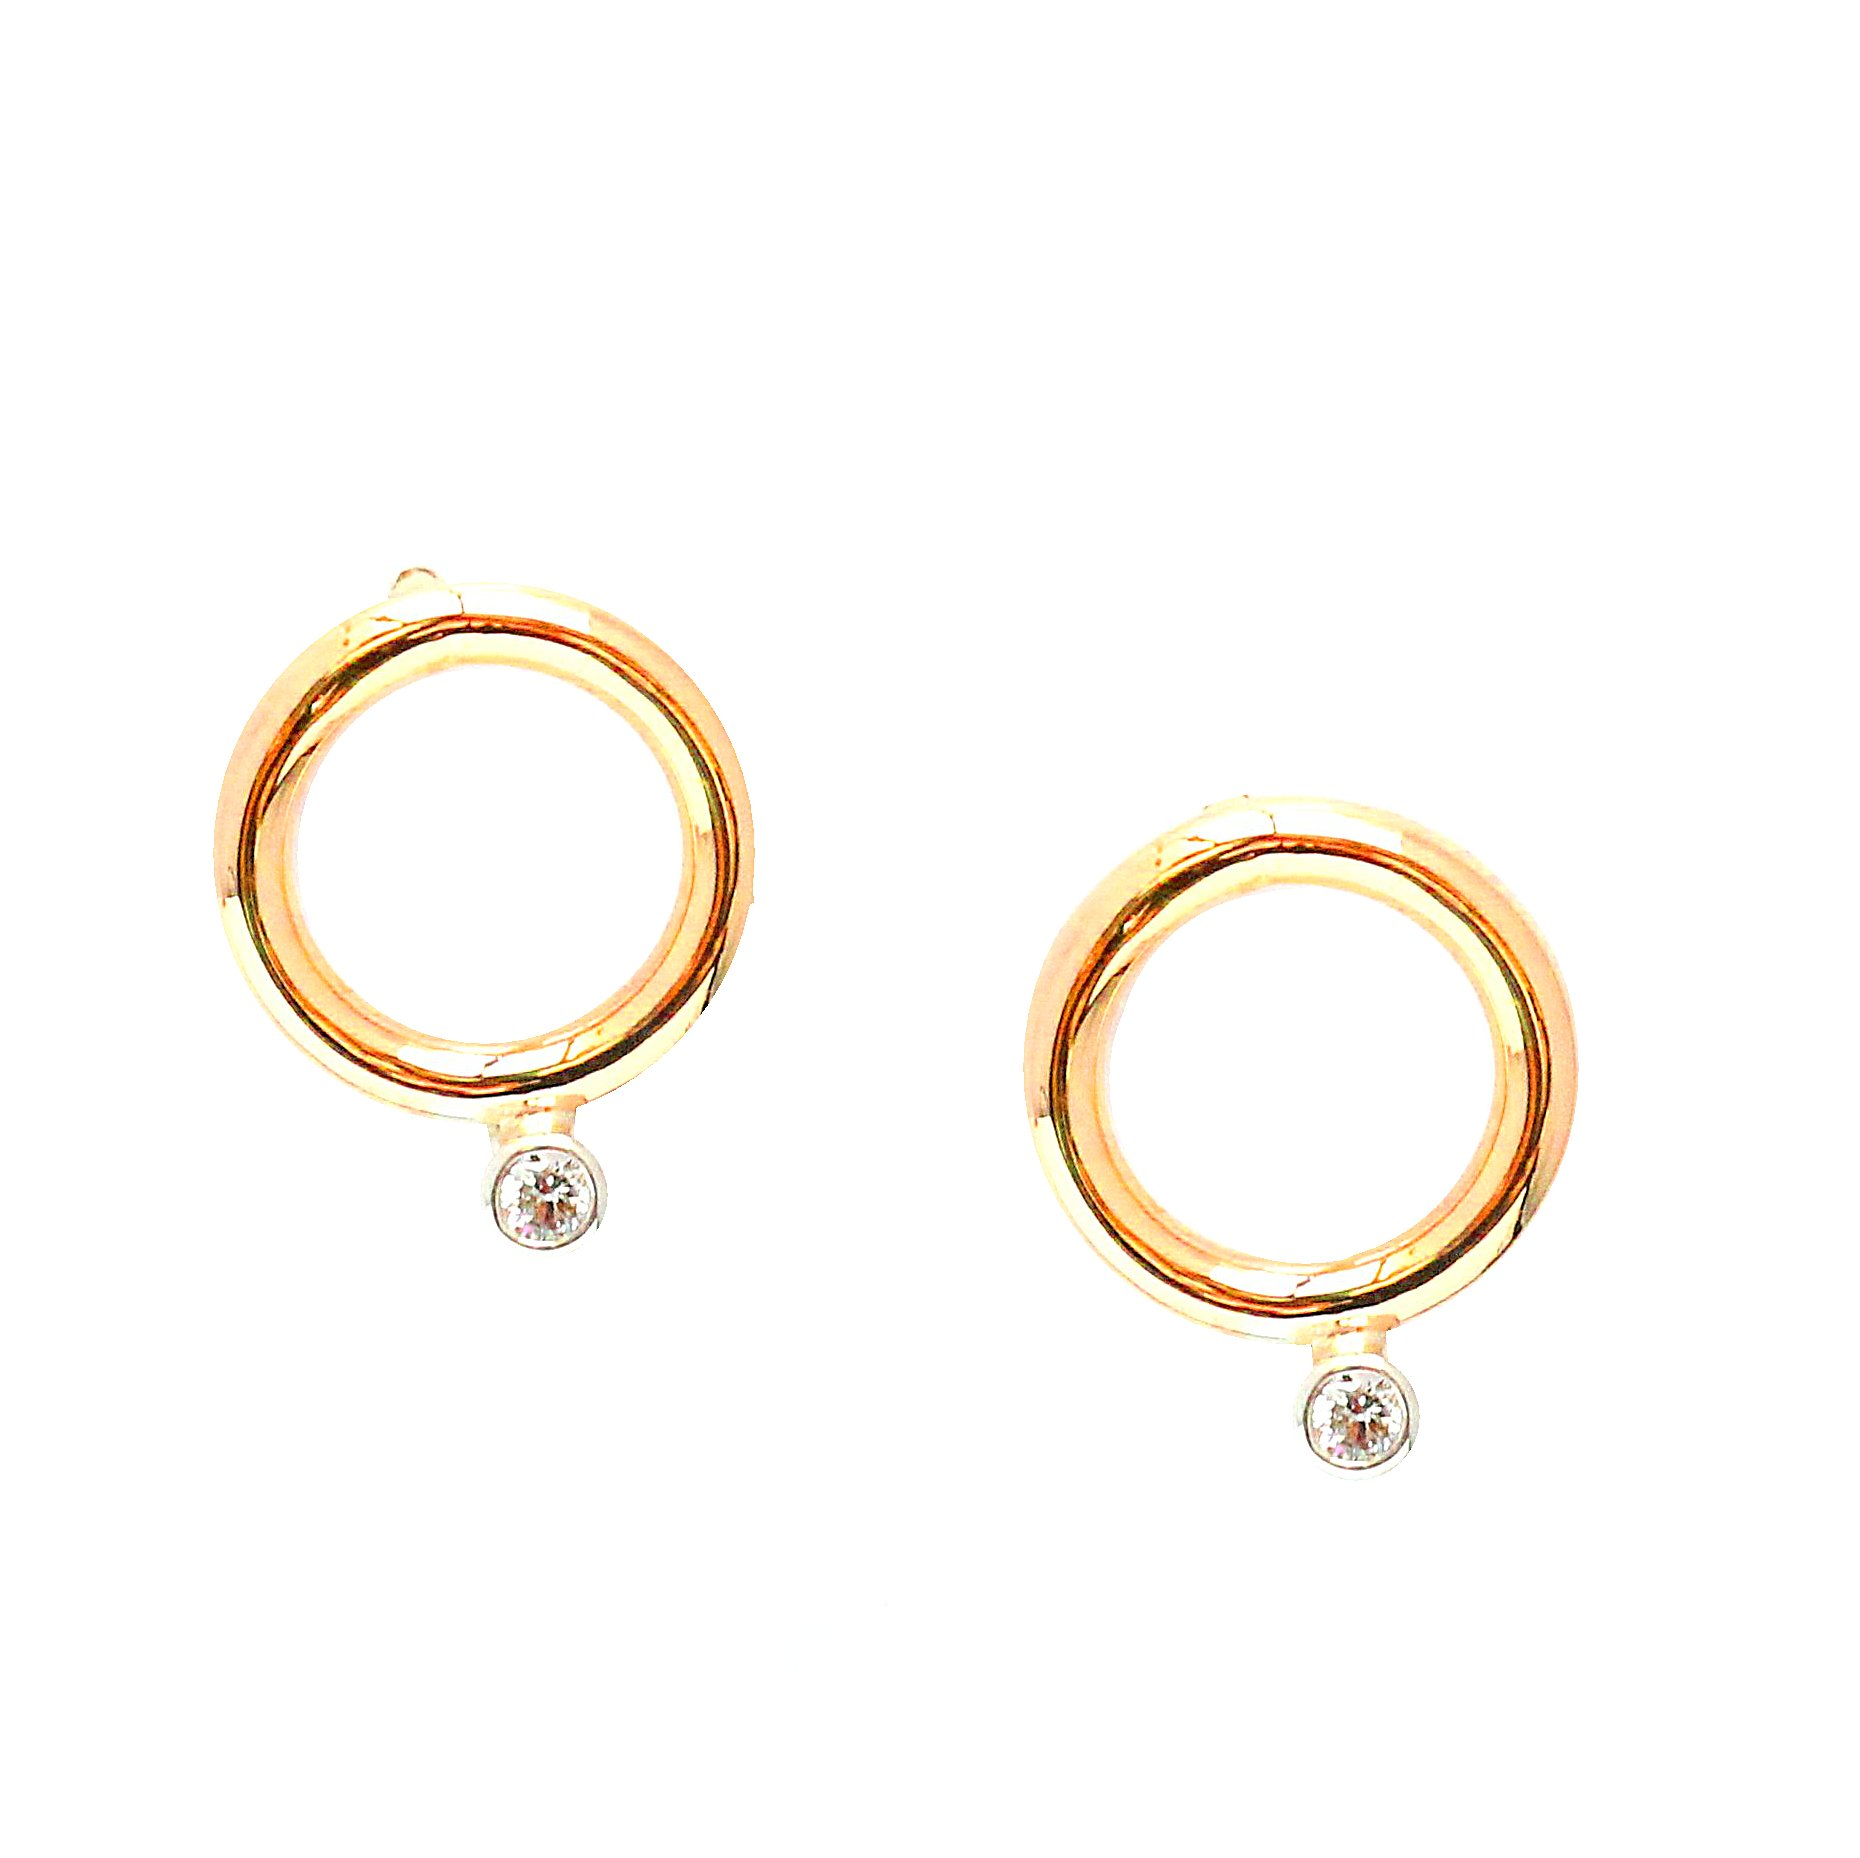 nordstrom shop diamond product ctw rack of earrings image carriere circle